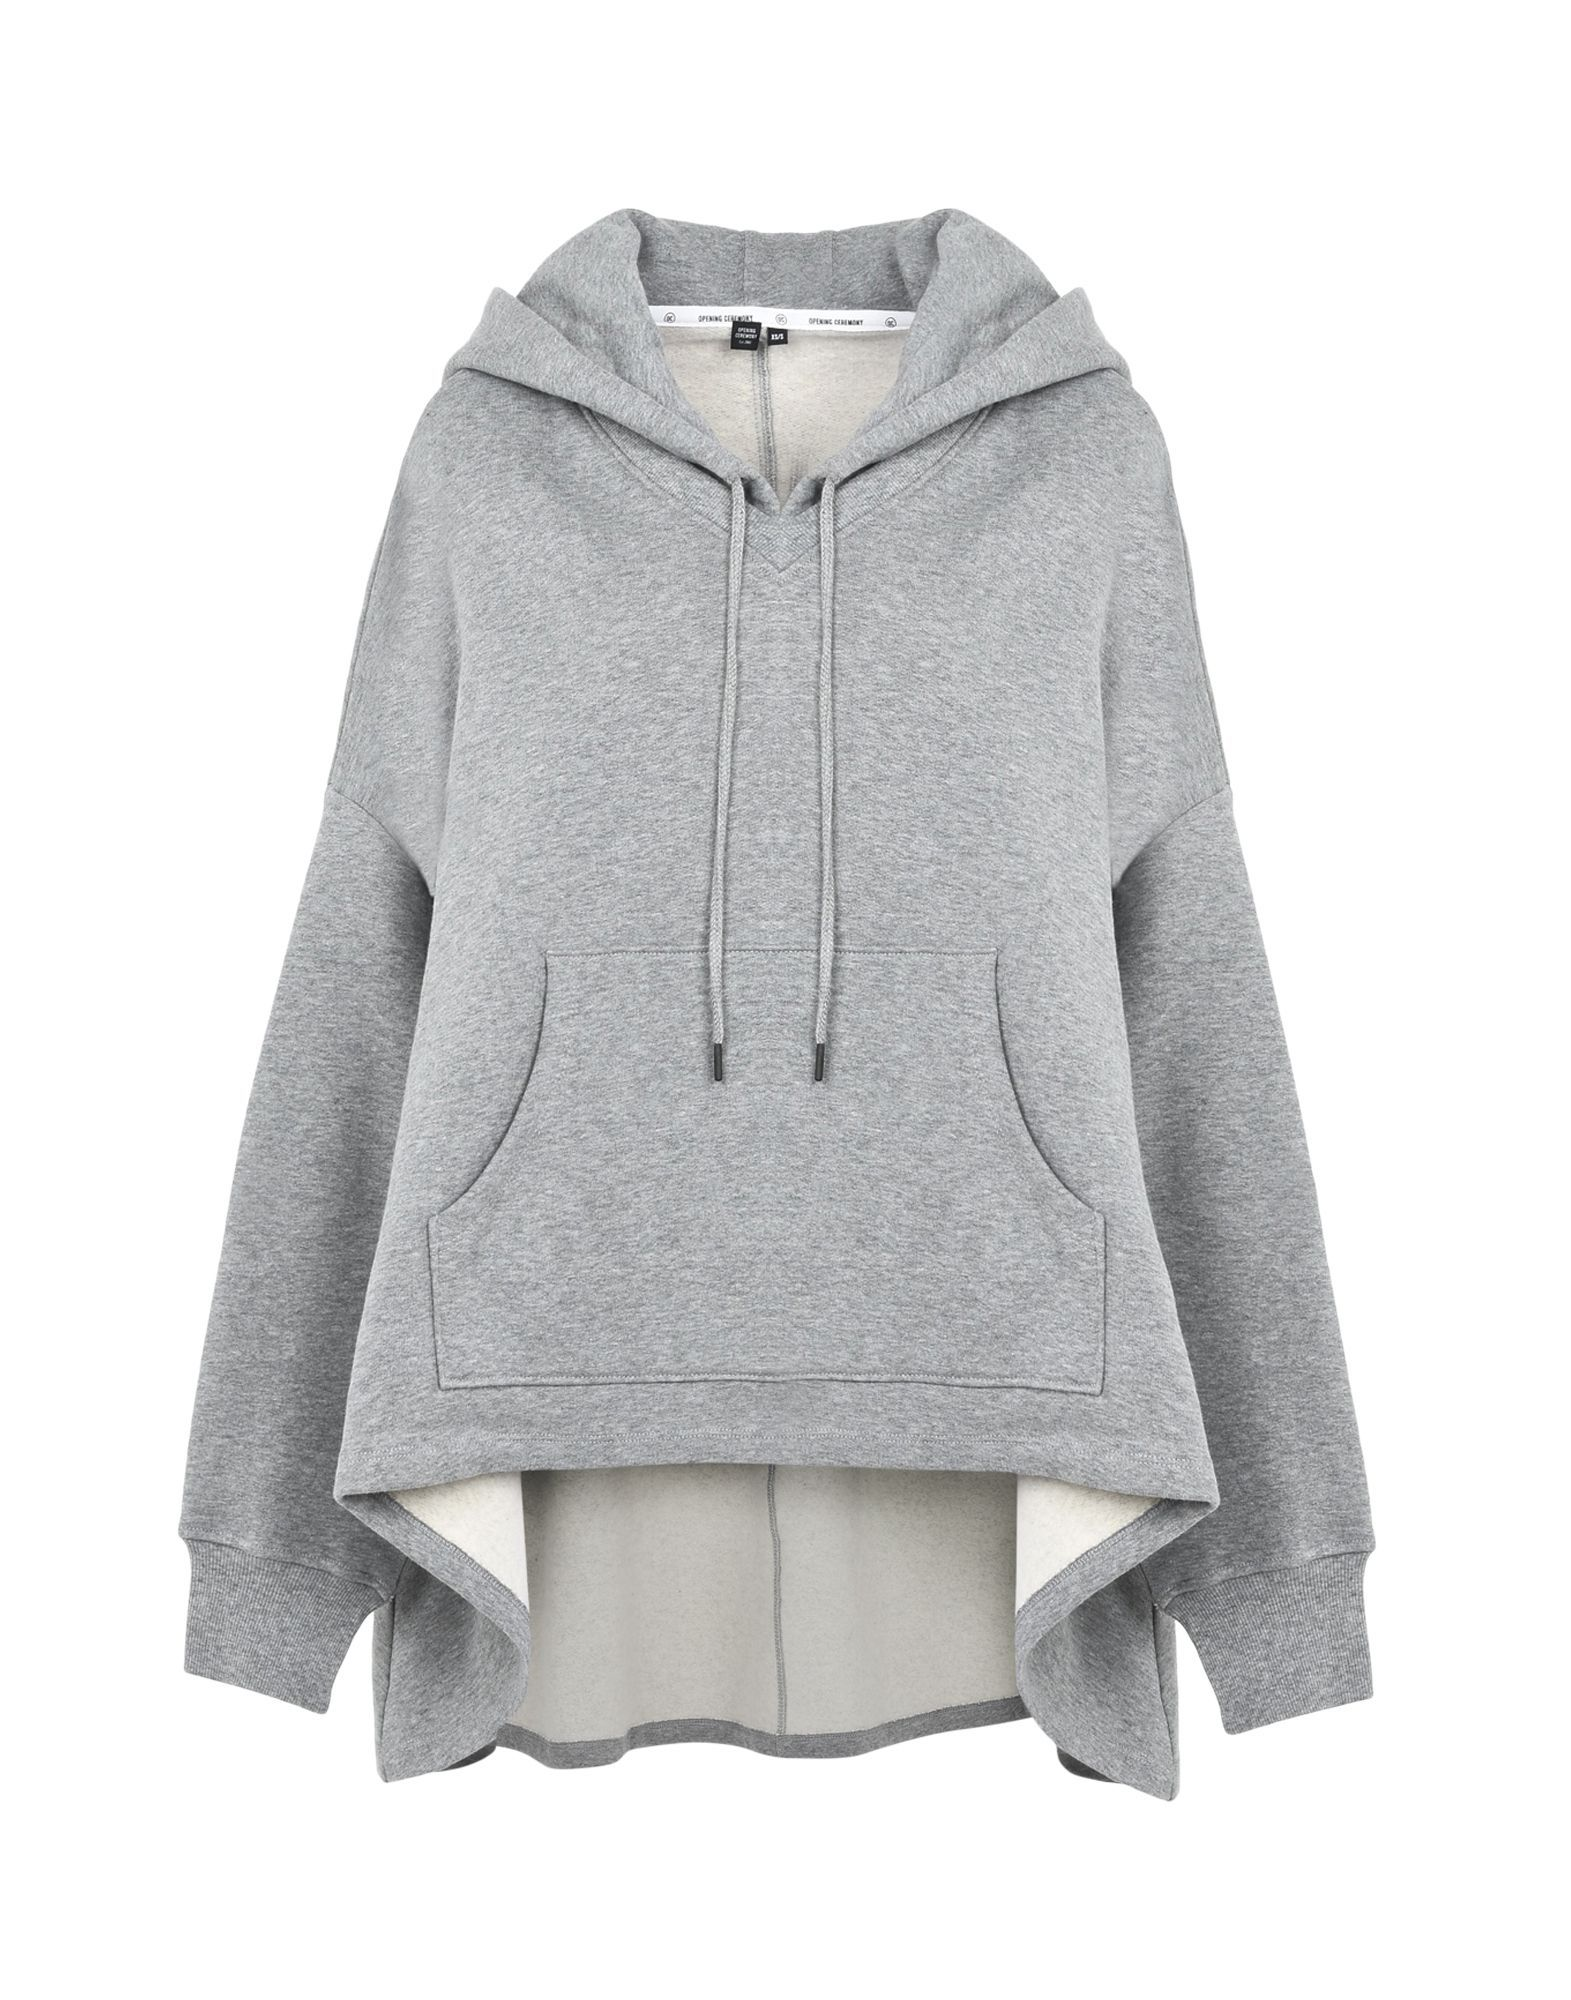 f1a1bd58341d Opening Ceremony Hooded Track Jacket - Women Opening Ceremony Hooded Track  Jackets online on YOOX United